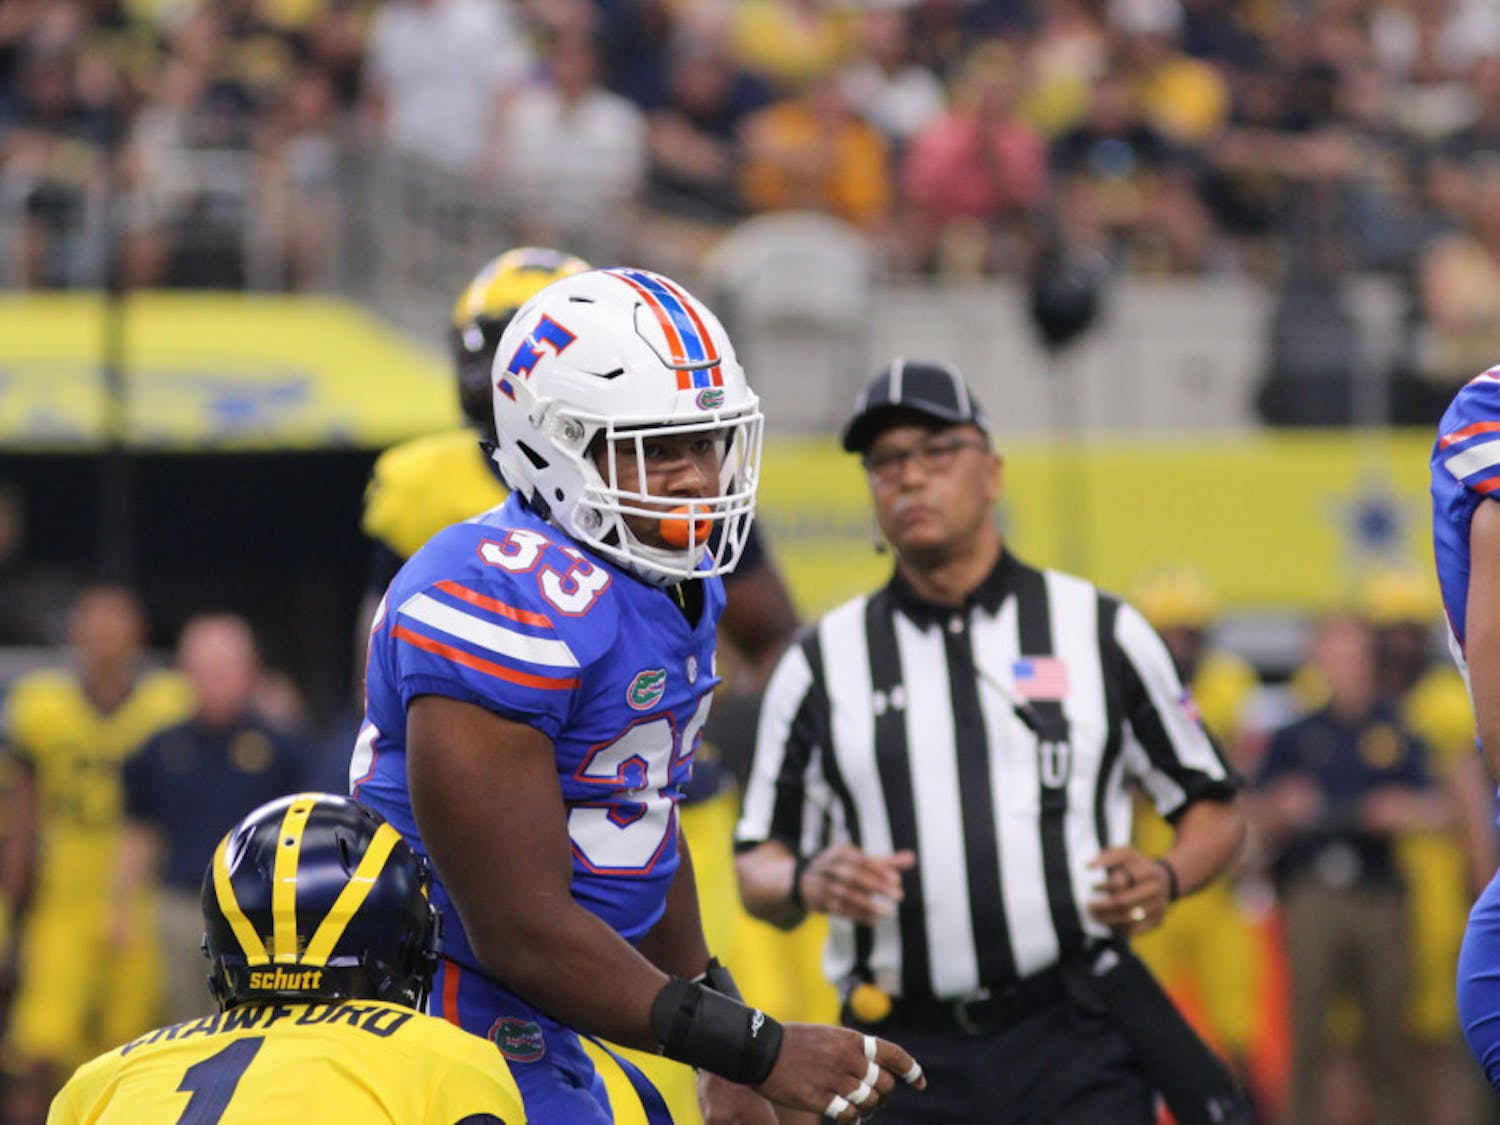 """There was no """"we just didn't execute,"""" from sophomore linebacker David Reese. Instead, as coach Randy Shannon pointed out on Monday, he called out his teammates. """"It's sometimes disappointing when everybody doesn't want to come together and just play for each other,"""" Reese said."""